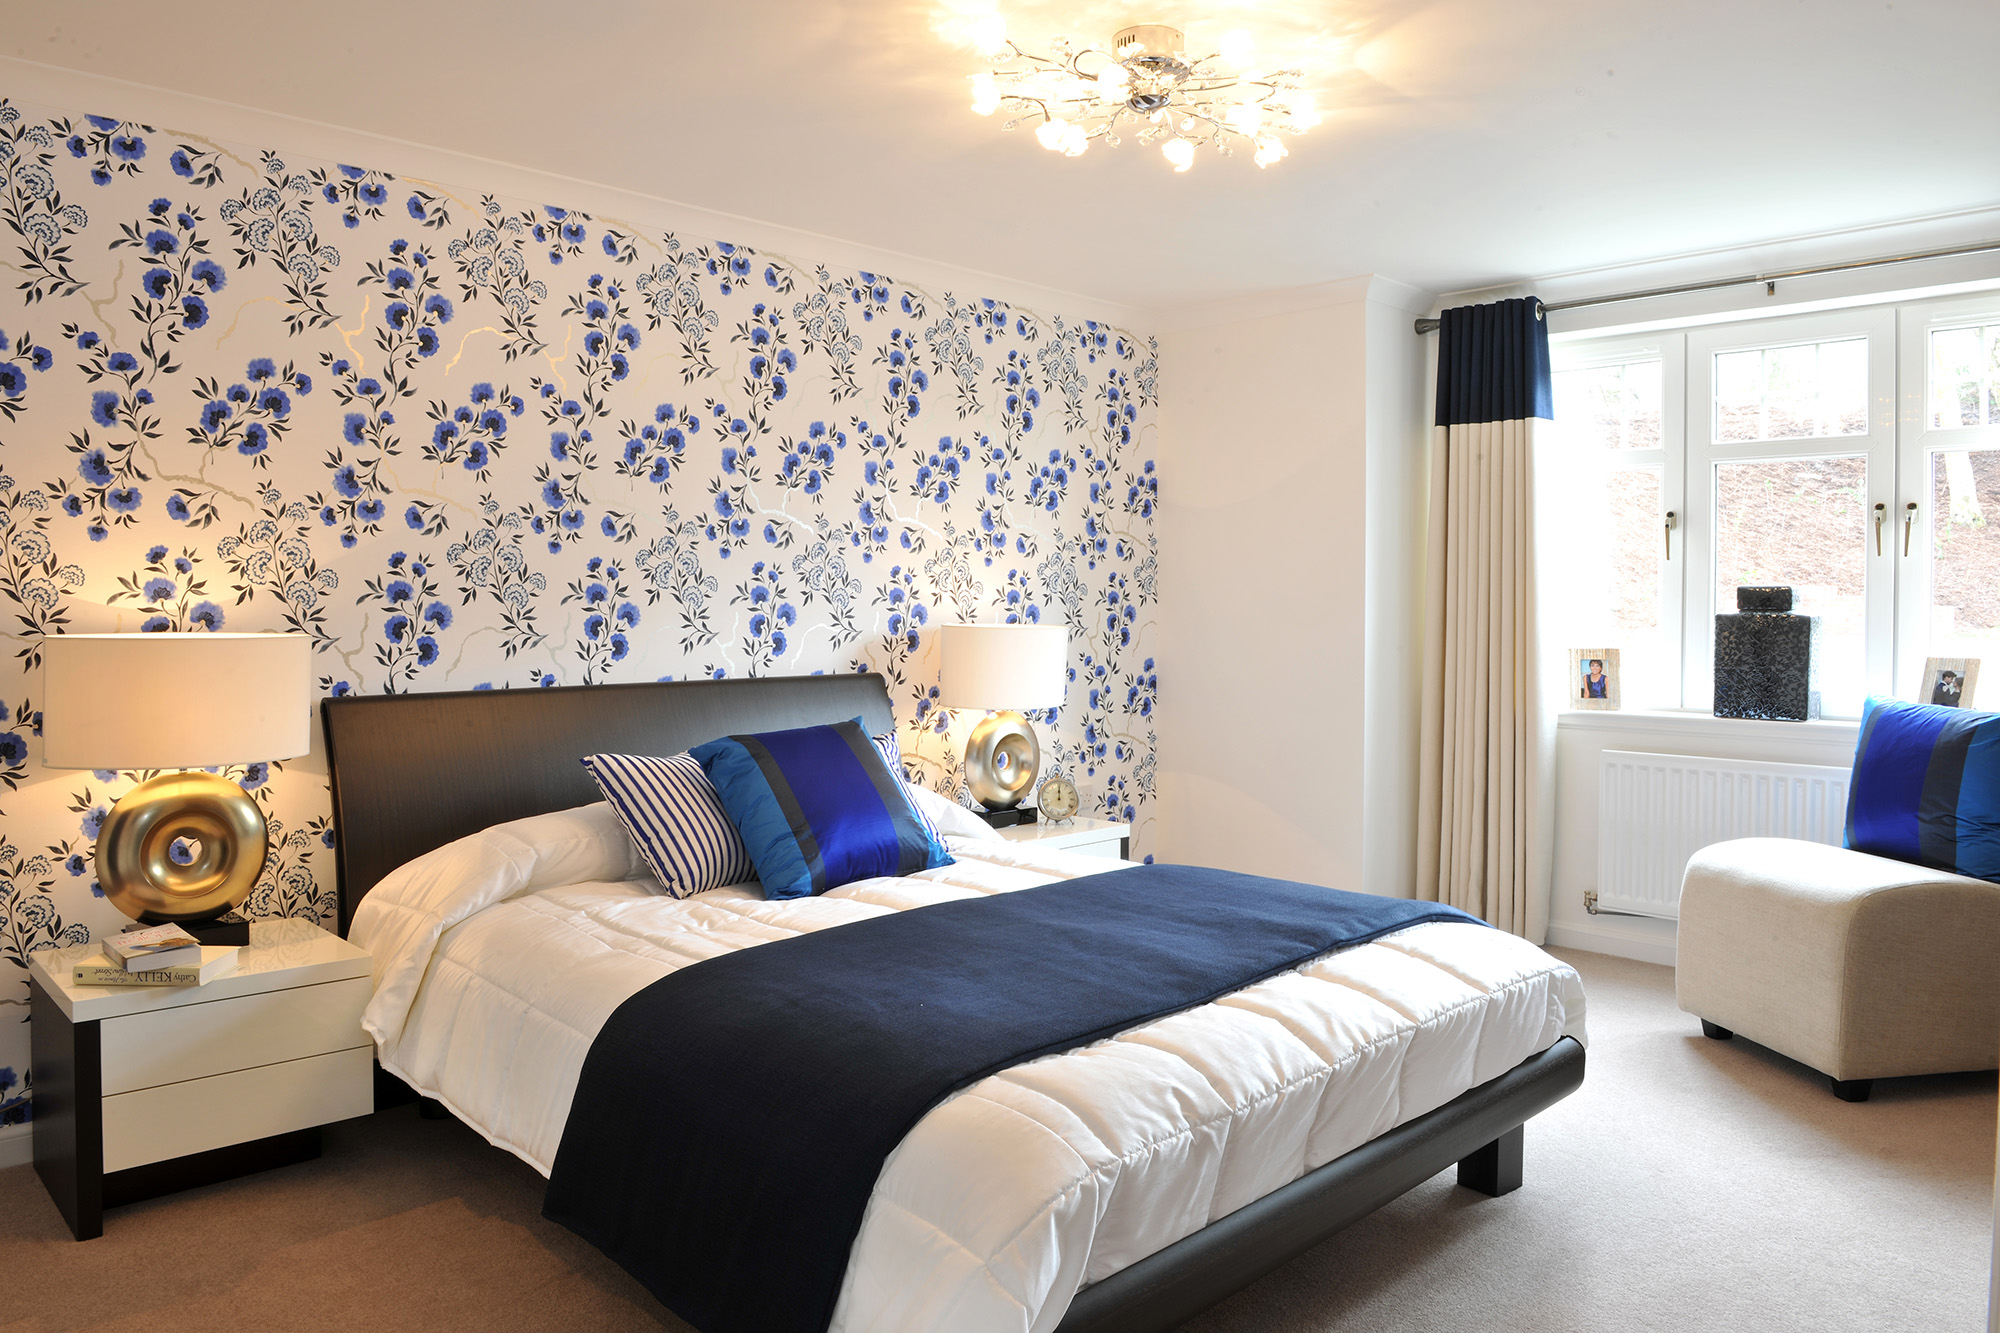 Image of bedroom with blue colour theme